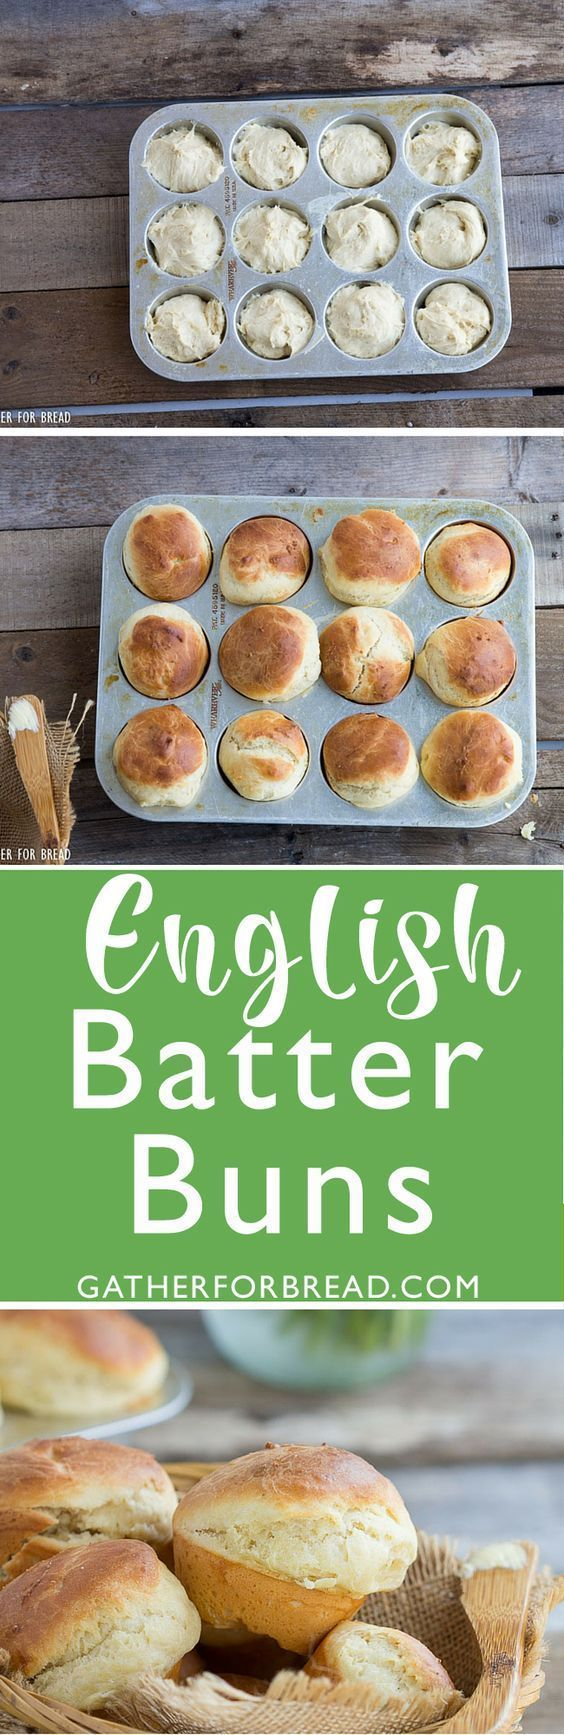 English Batter Buns - Homemade soft rolls. Perfect as a side for every meal!  | http://gatherforbread.com